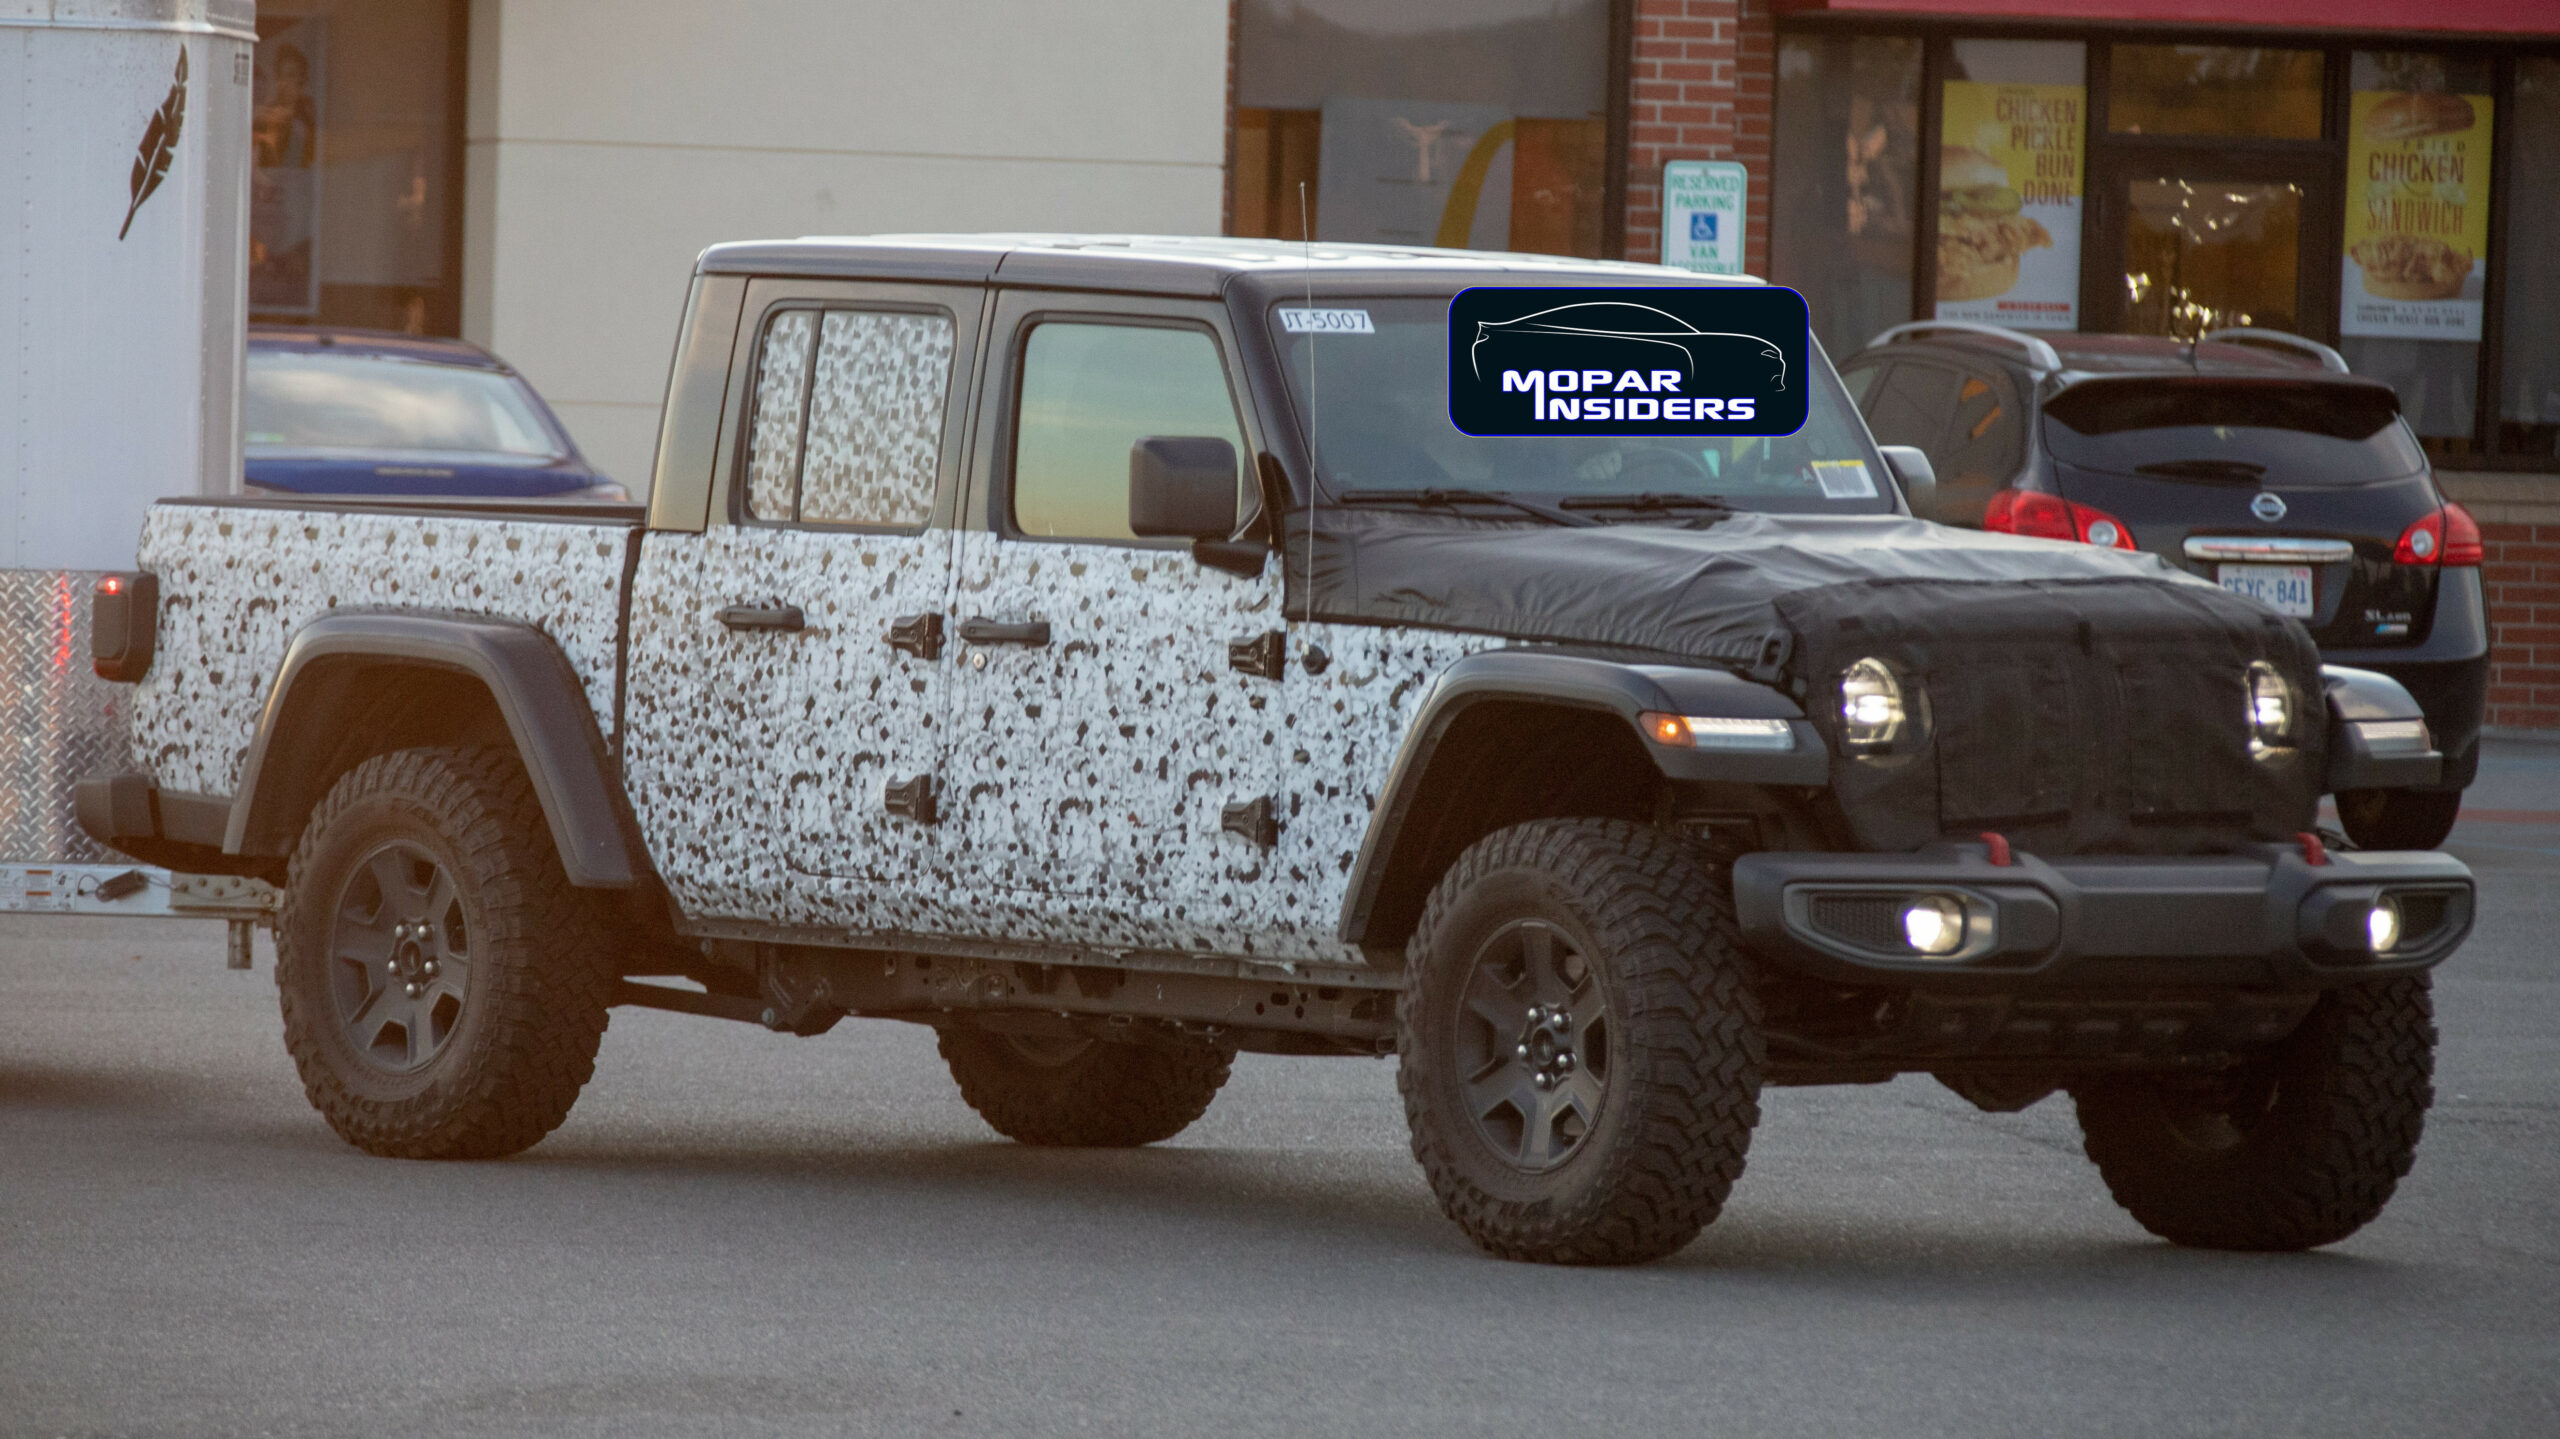 Rumors When Will The 2022 Jeep Gladiator Be Available